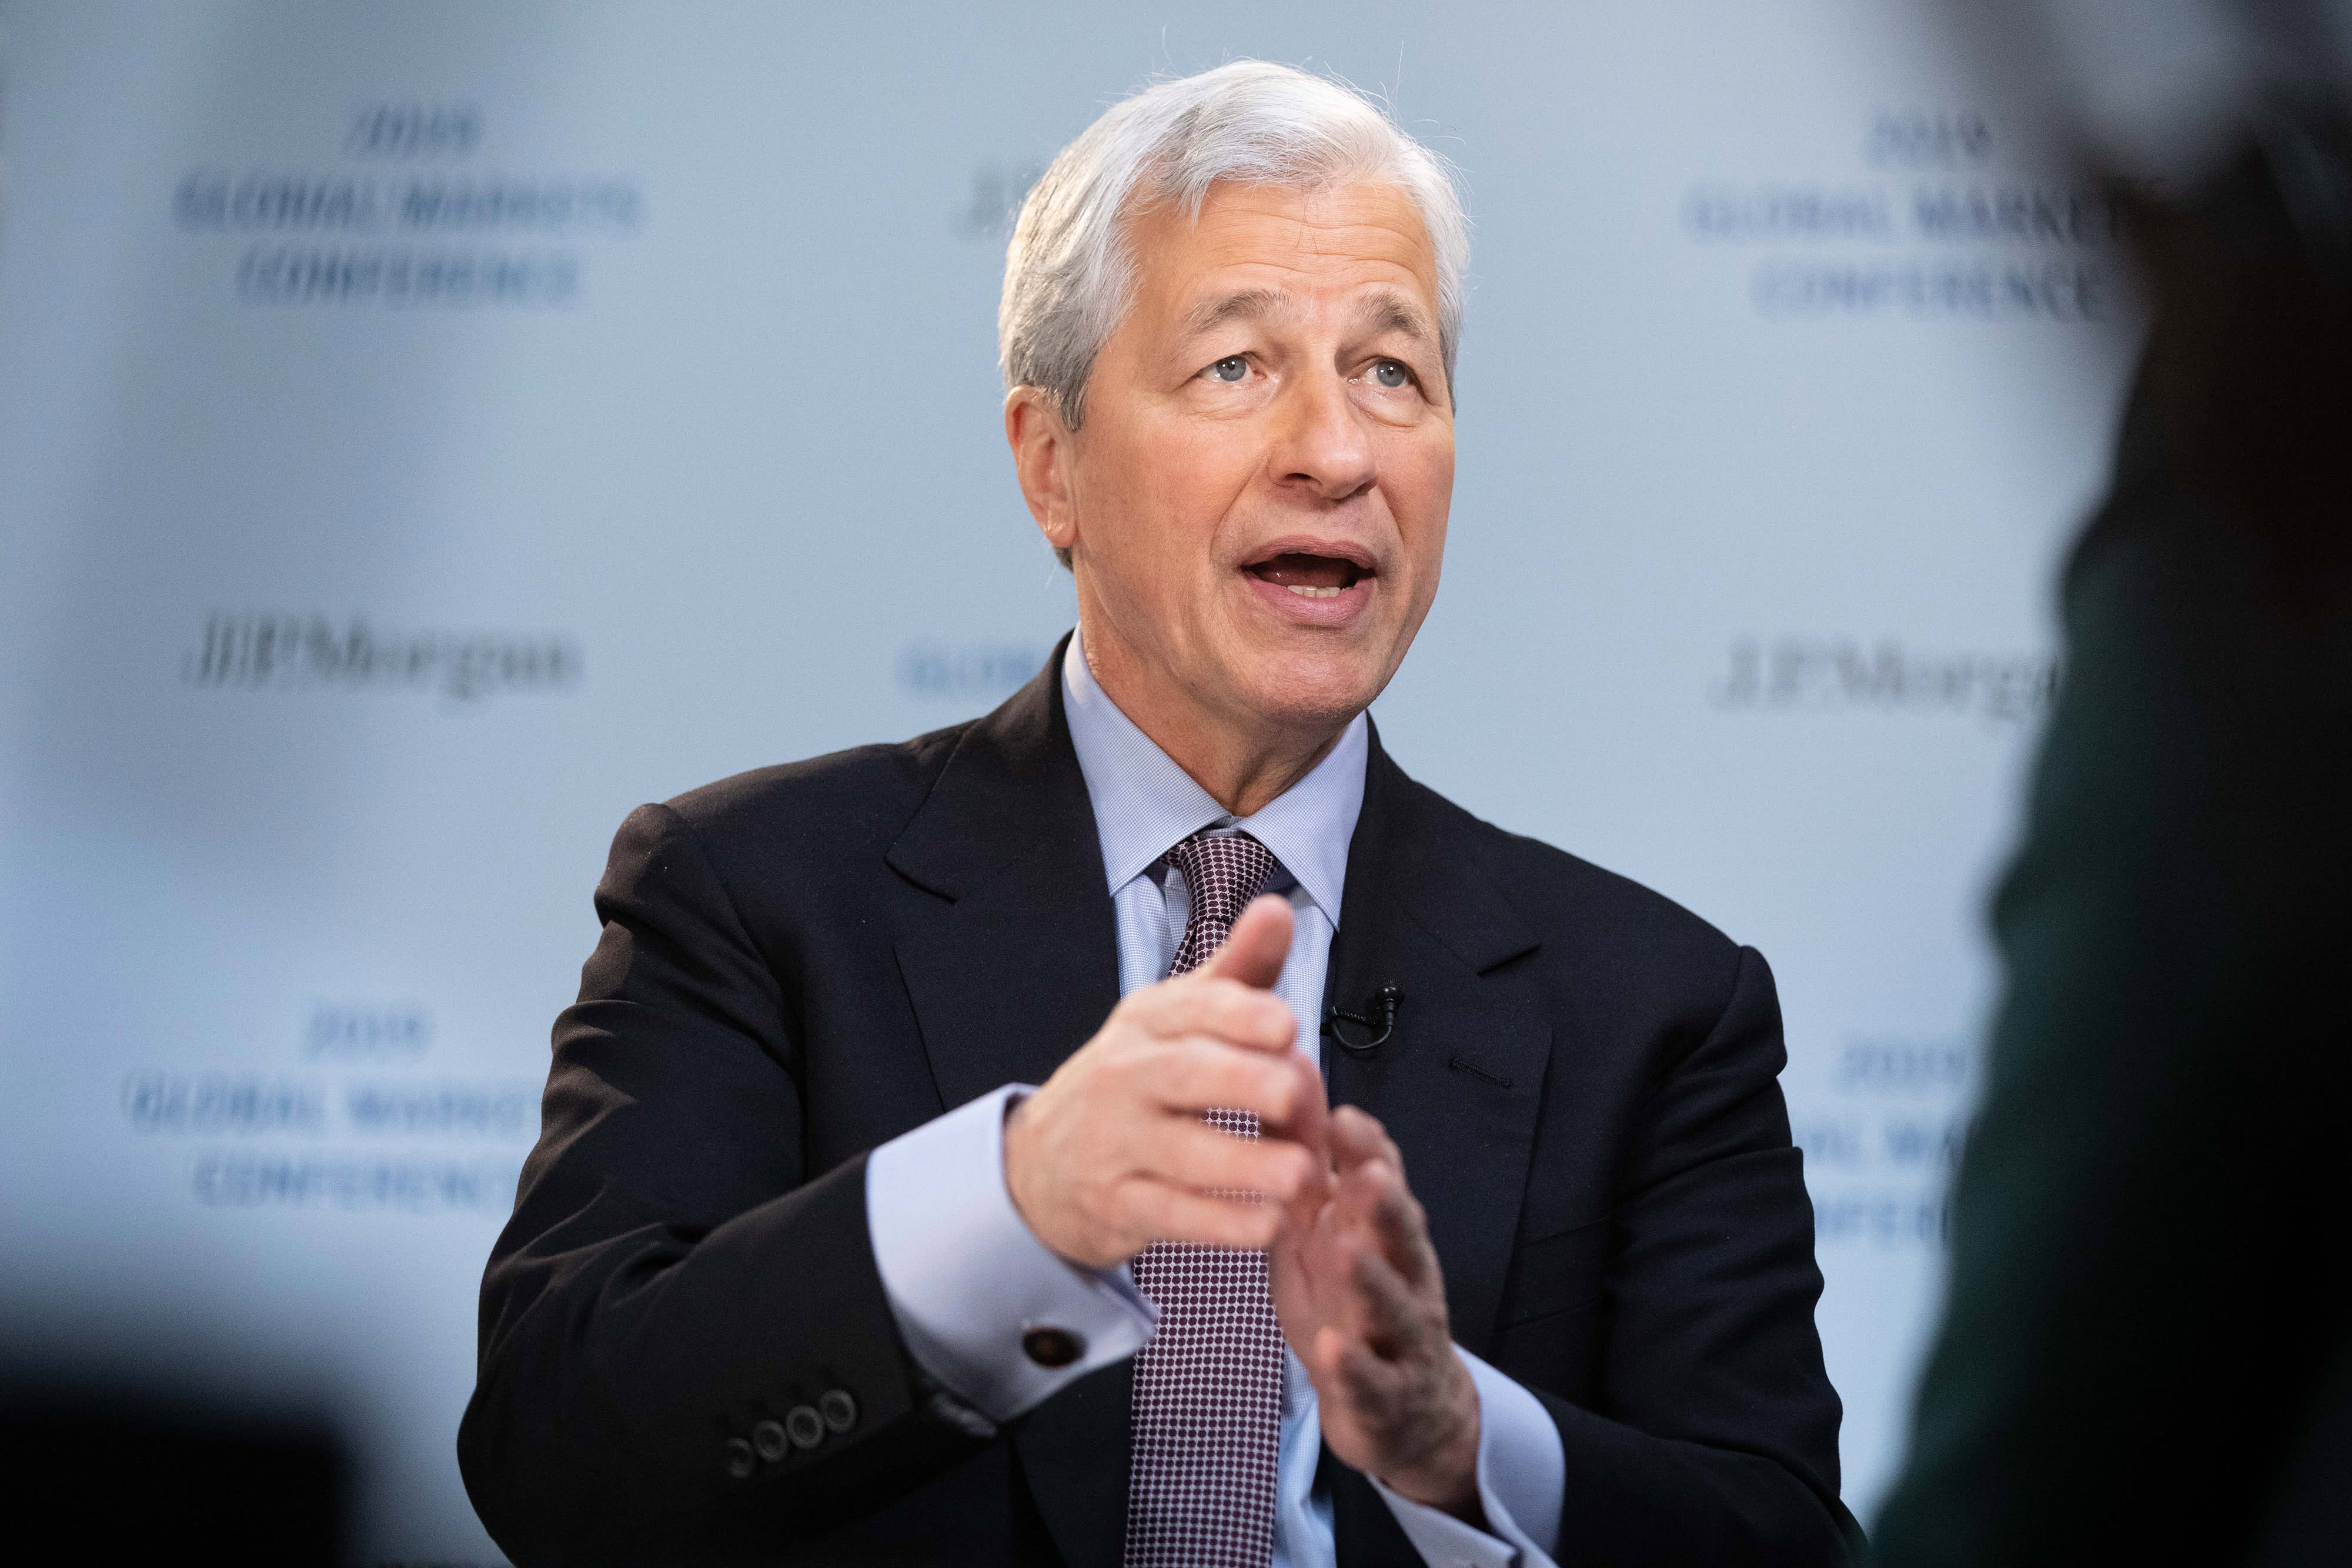 JPMorgan Chase CEO Jamie Dimon: Fintech is an 'enormous competitive' t... image